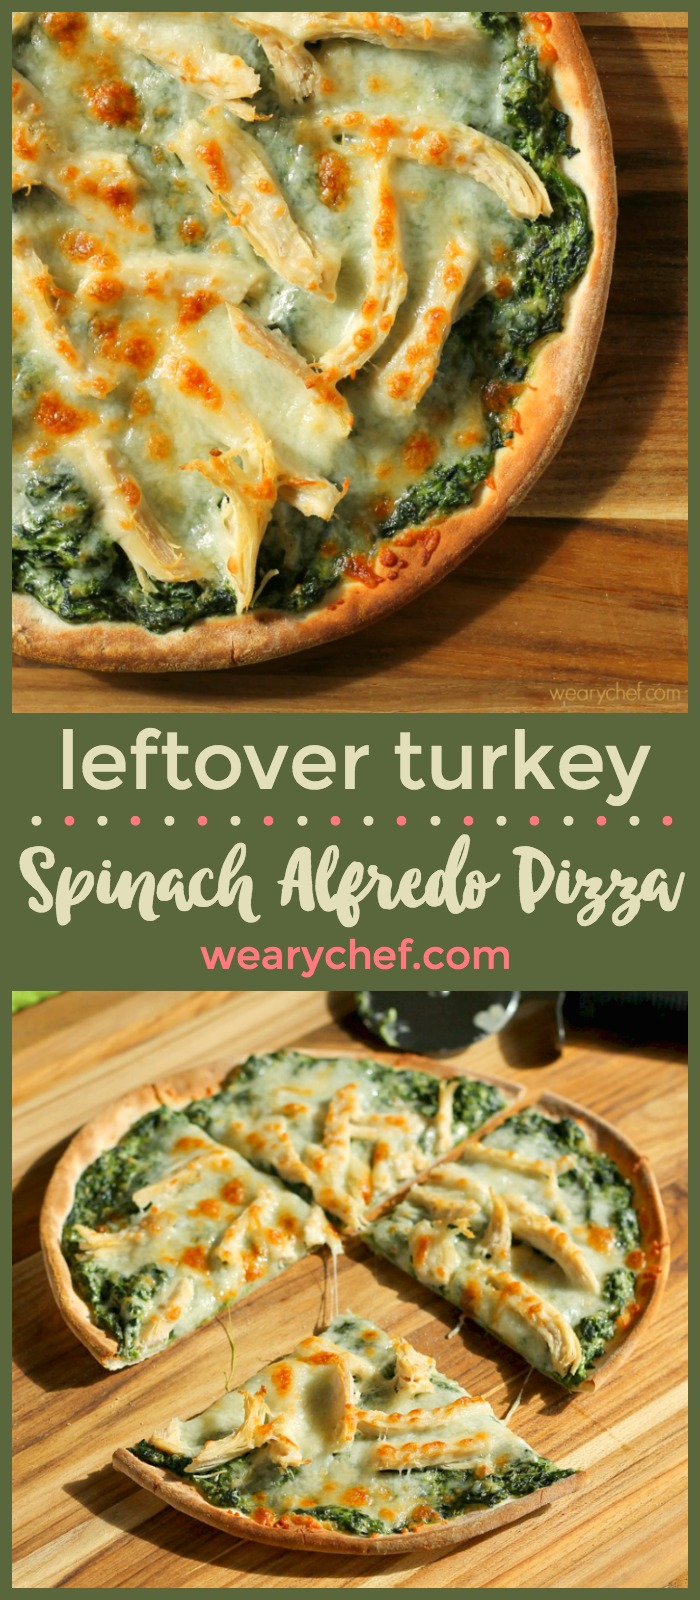 Turn leftover chicken or pizza into a dreamy new dinner with this Spinach Alfredo Pizza recipe! It's ready in under 30 minutes!